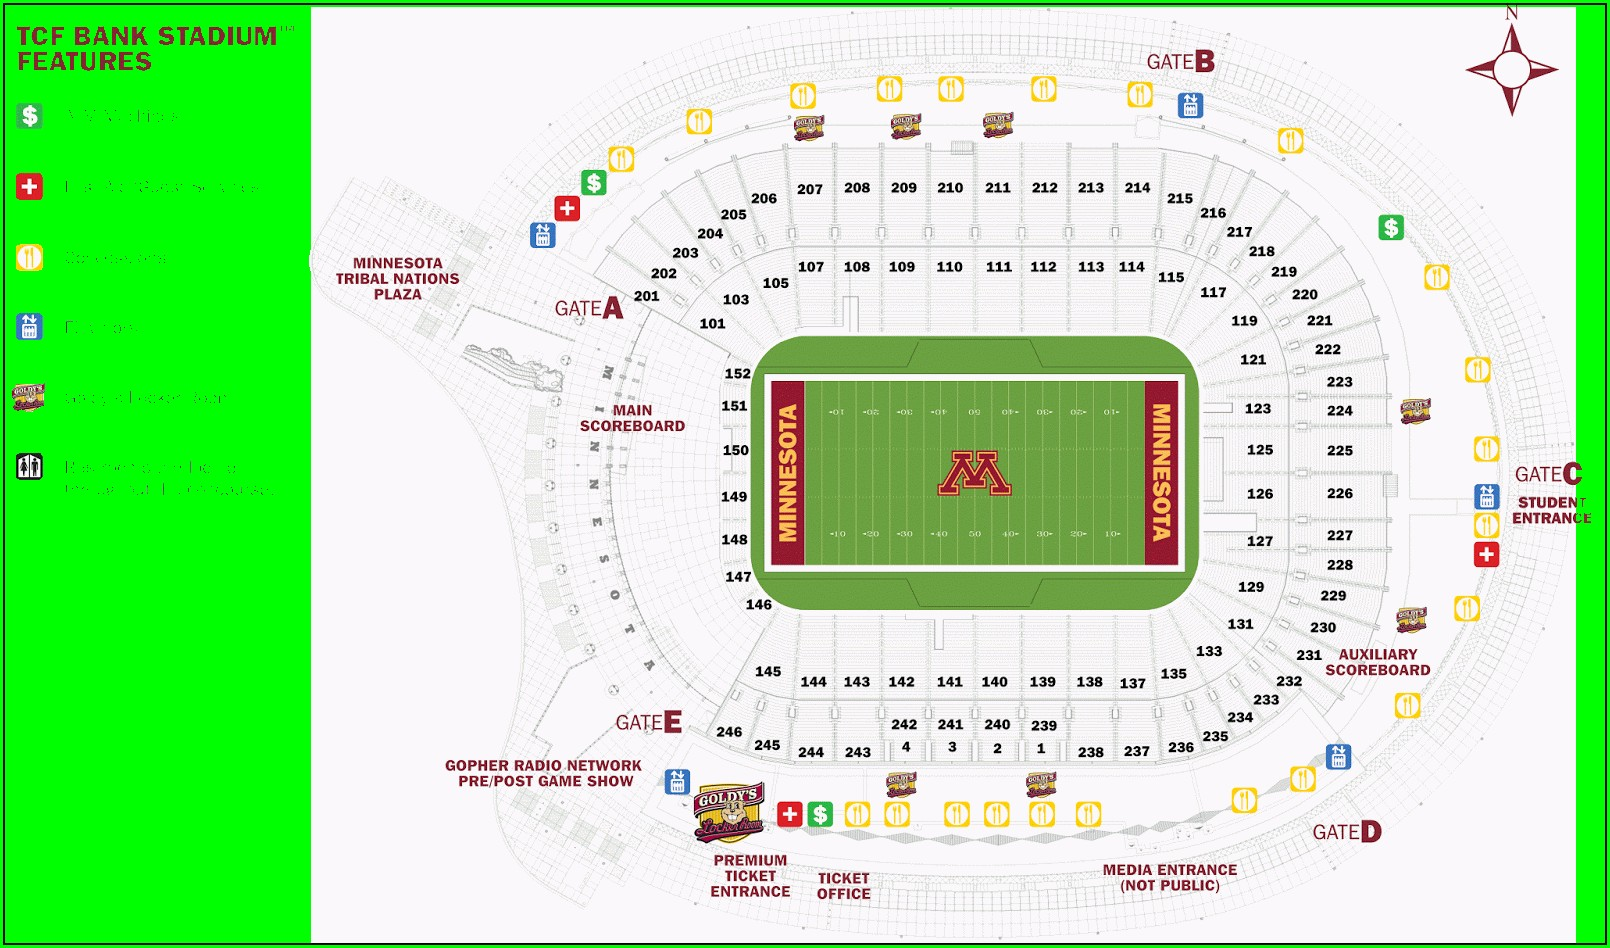 Boone Pickens Stadium Seating Map